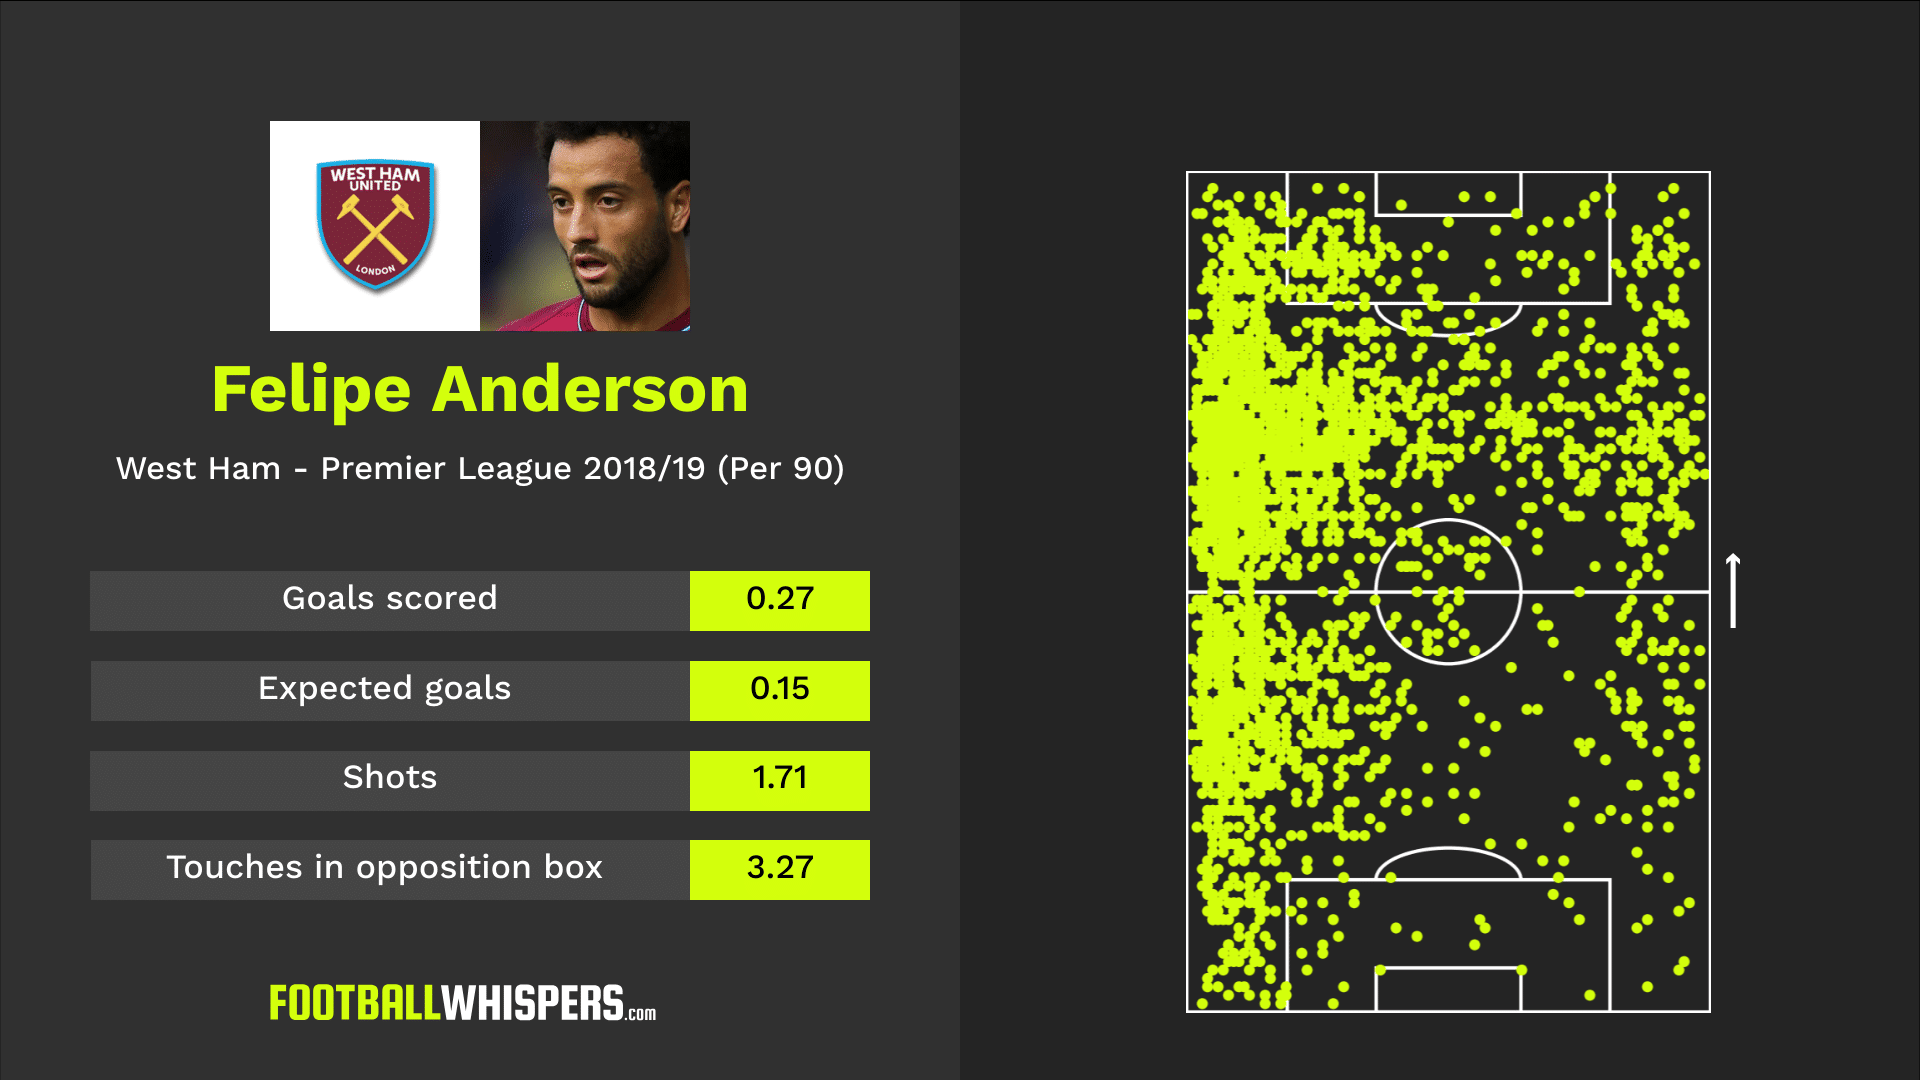 What would Felipe Anderson add to Liverpool's attack?